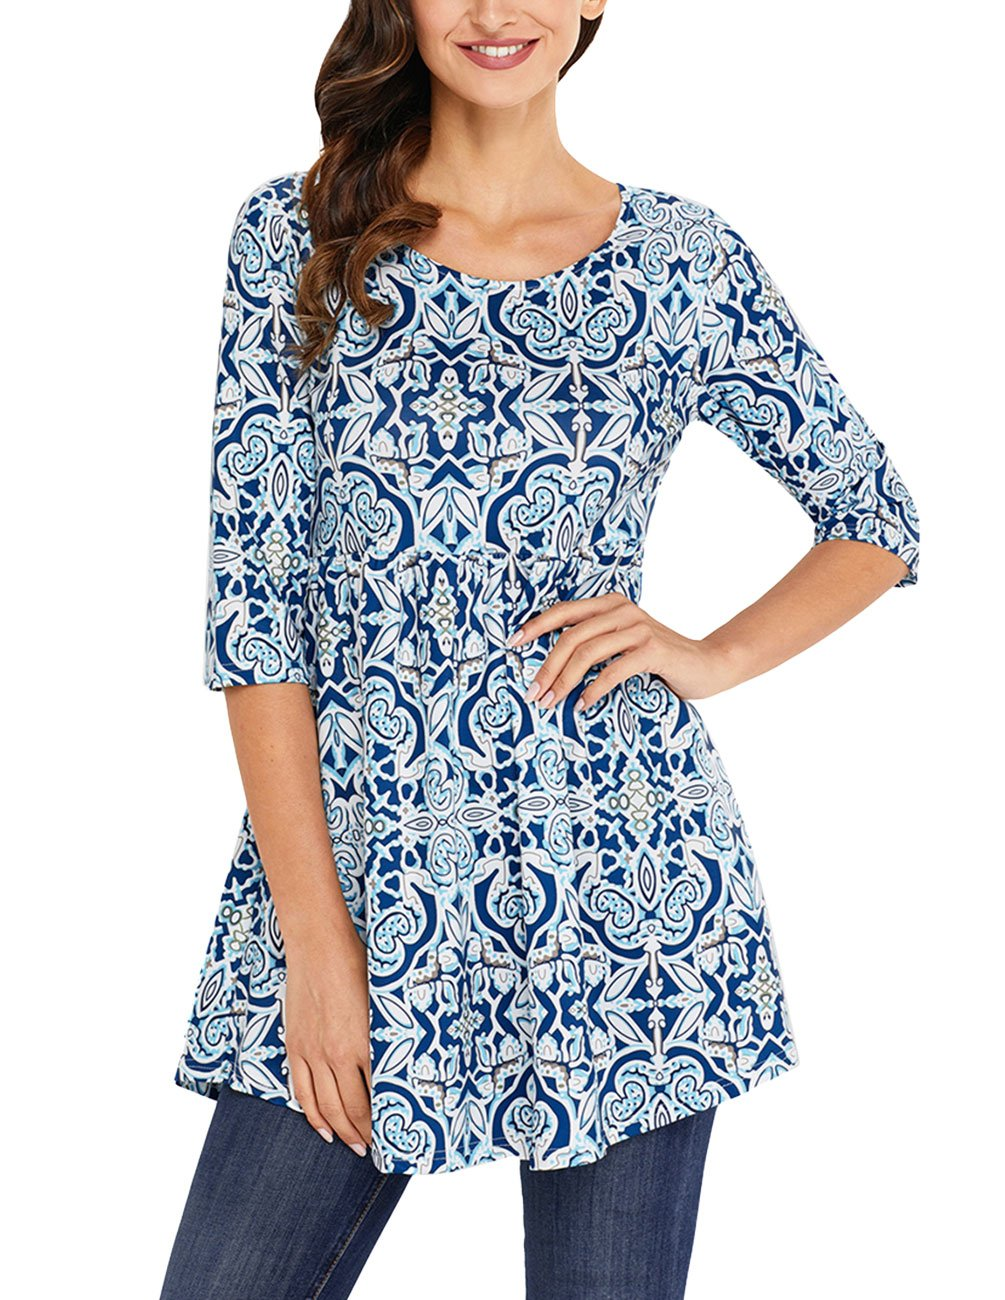 Ray-JrMALL Womens 3/4 Sleeve Roundneck Floral Tunic Tops Loose Blouse Button up Shirts RAYFBMWCTO343-P